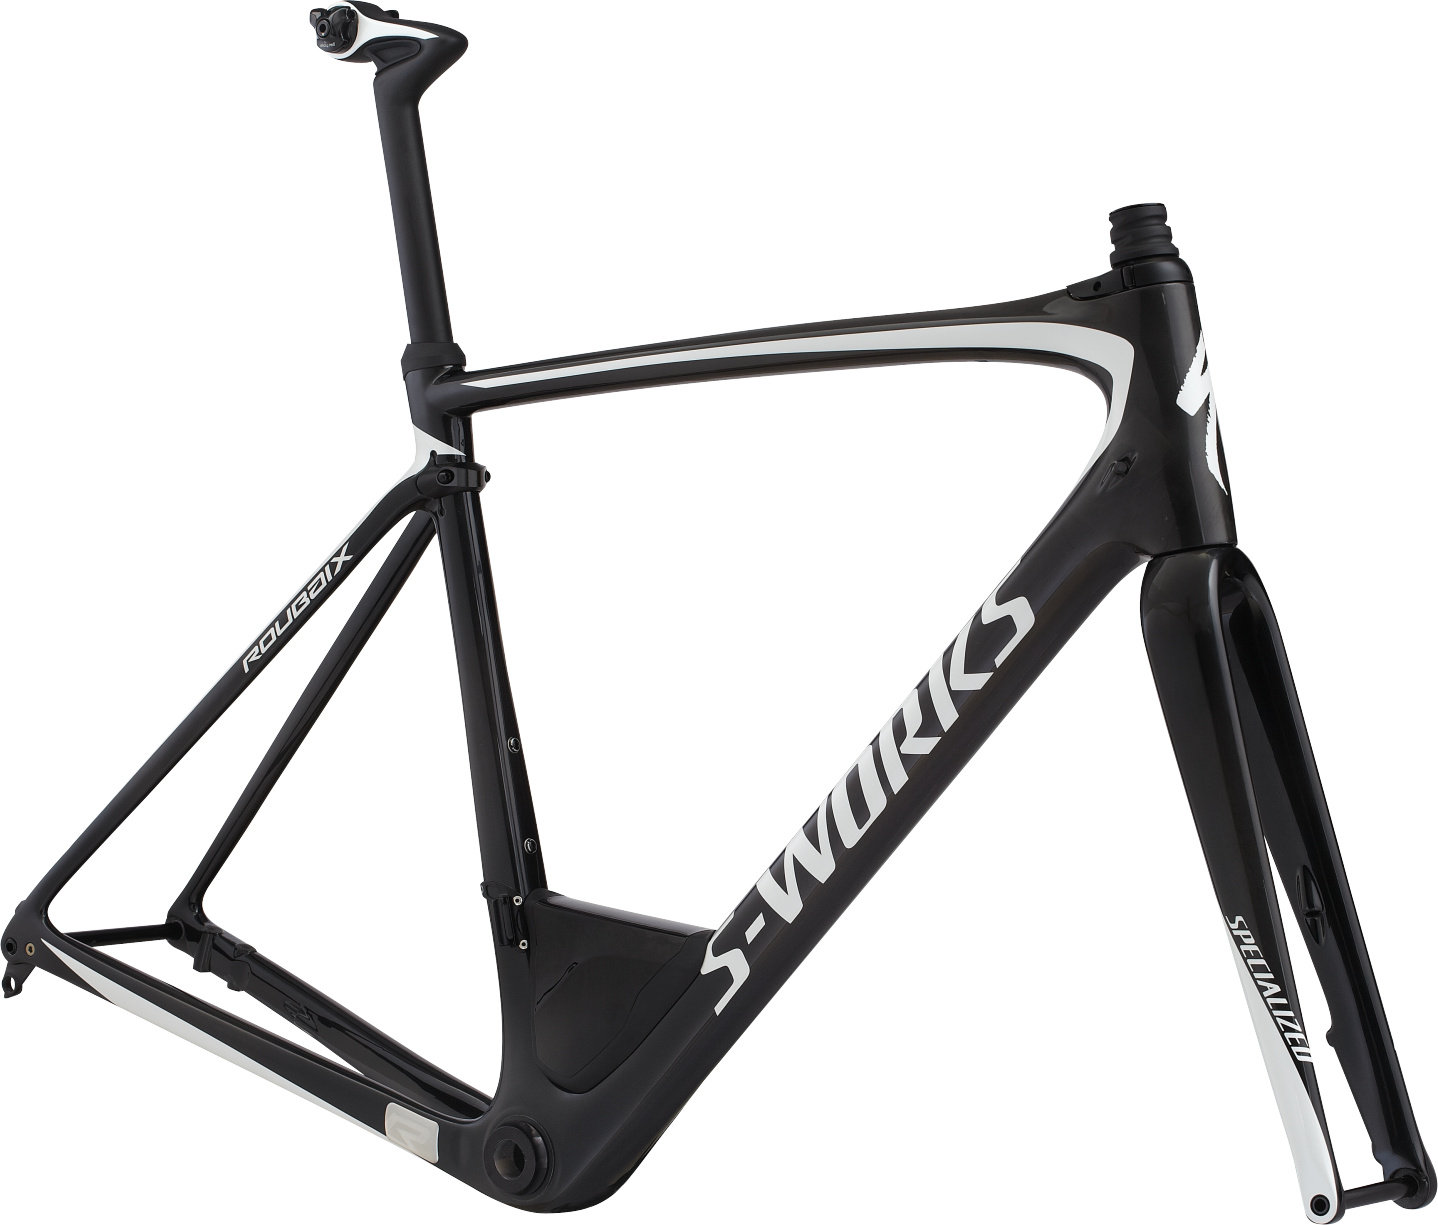 SPECIALIZED SW ROUBAIX FRMSET CARB/METWHTSIL 49 - Bike Zone